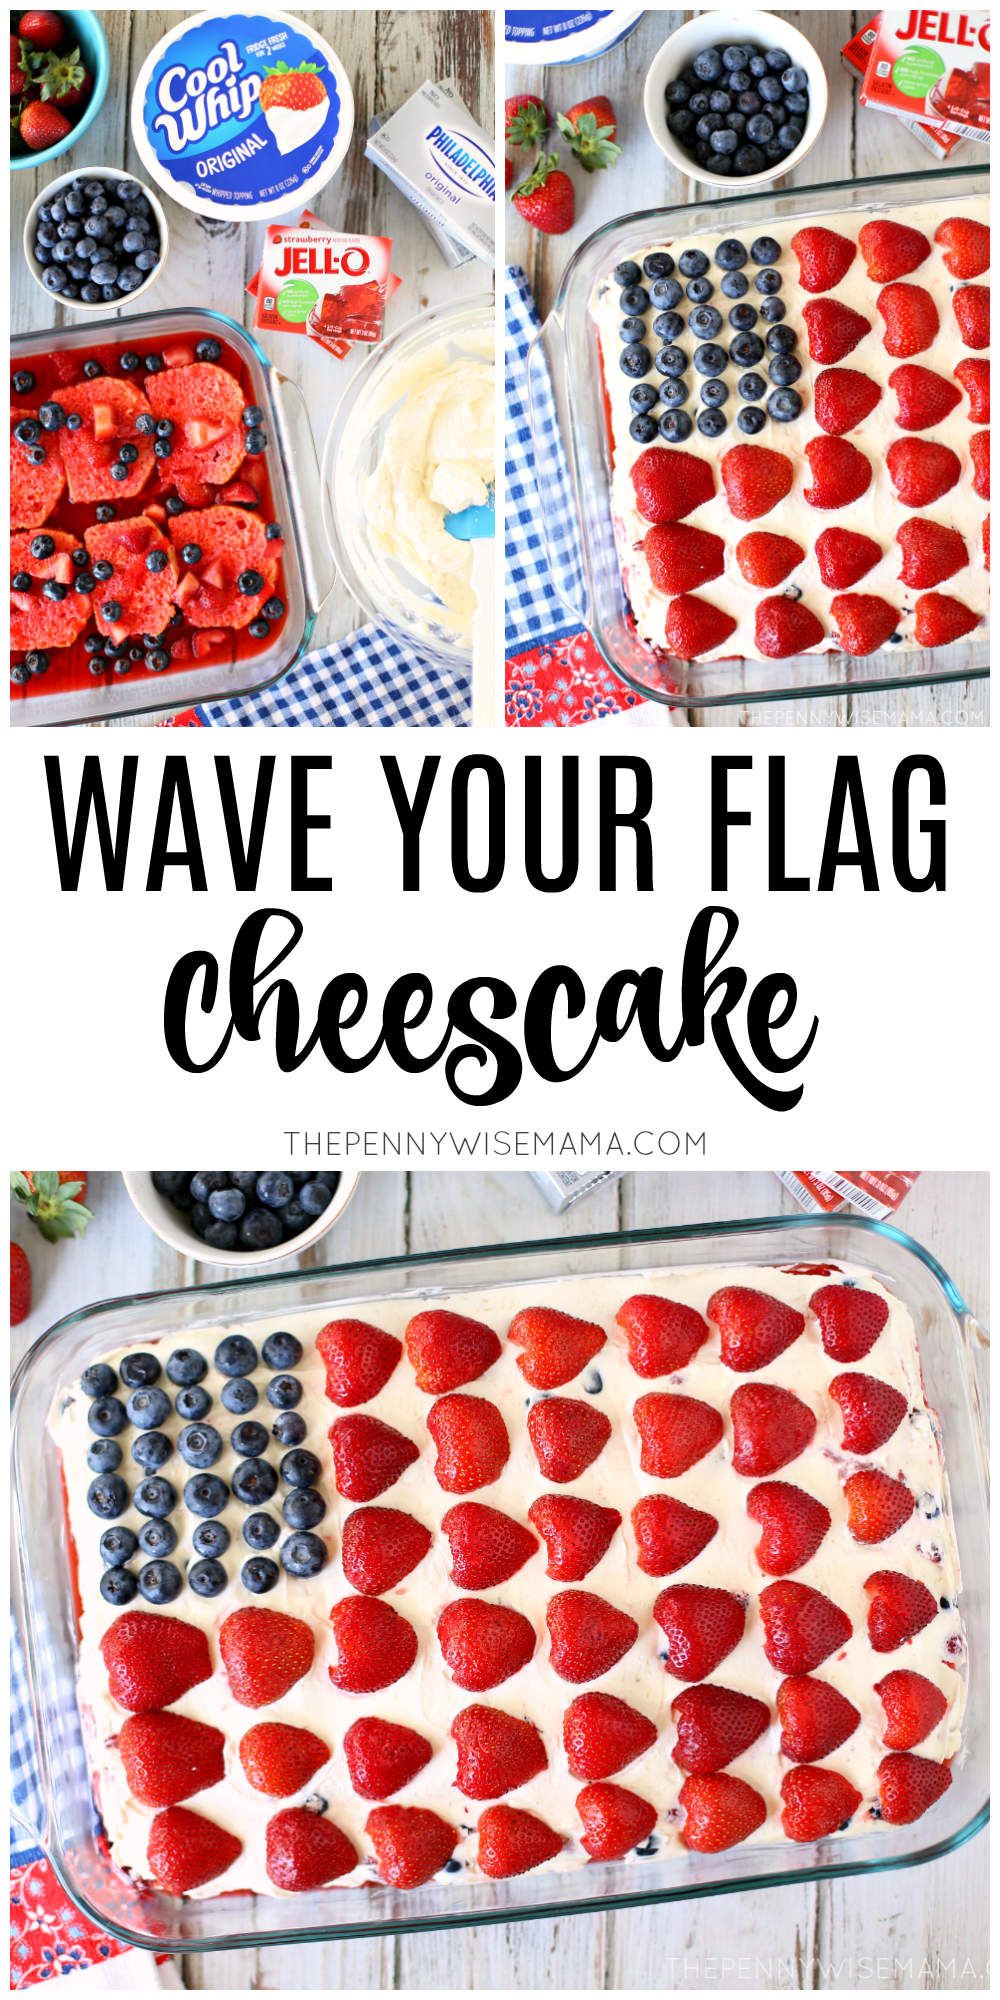 Wave Your Flag Cheesecake - perfect for the Fourth of July or any time you want to serve an all-American dessert that is red, white and cool!